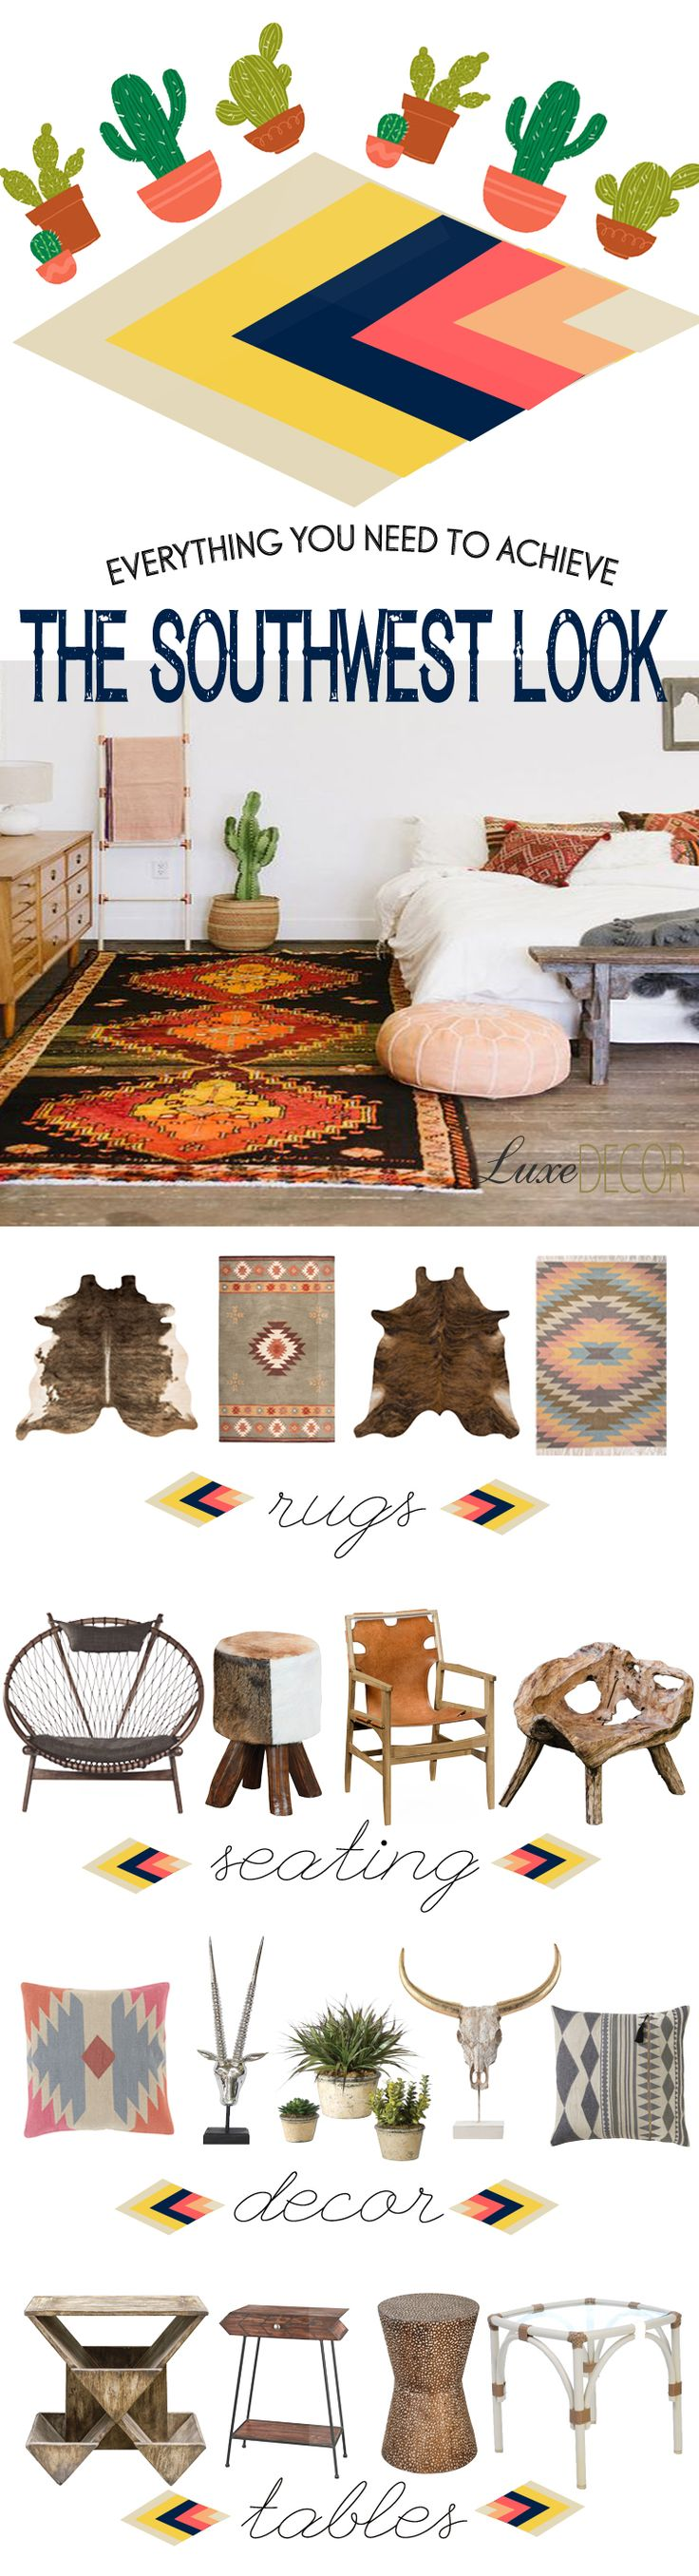 Of all the 2016 home trends, we love the look of a Southwest influenced abode. From graphic prints to bold colors, we can't get enough of vibrant Mojave rugs, leather chairs, animal hide accents, and lush succulents. Ground a ranch style desert aesthetic with LuxeDecor's curated selection of Southwest decor.